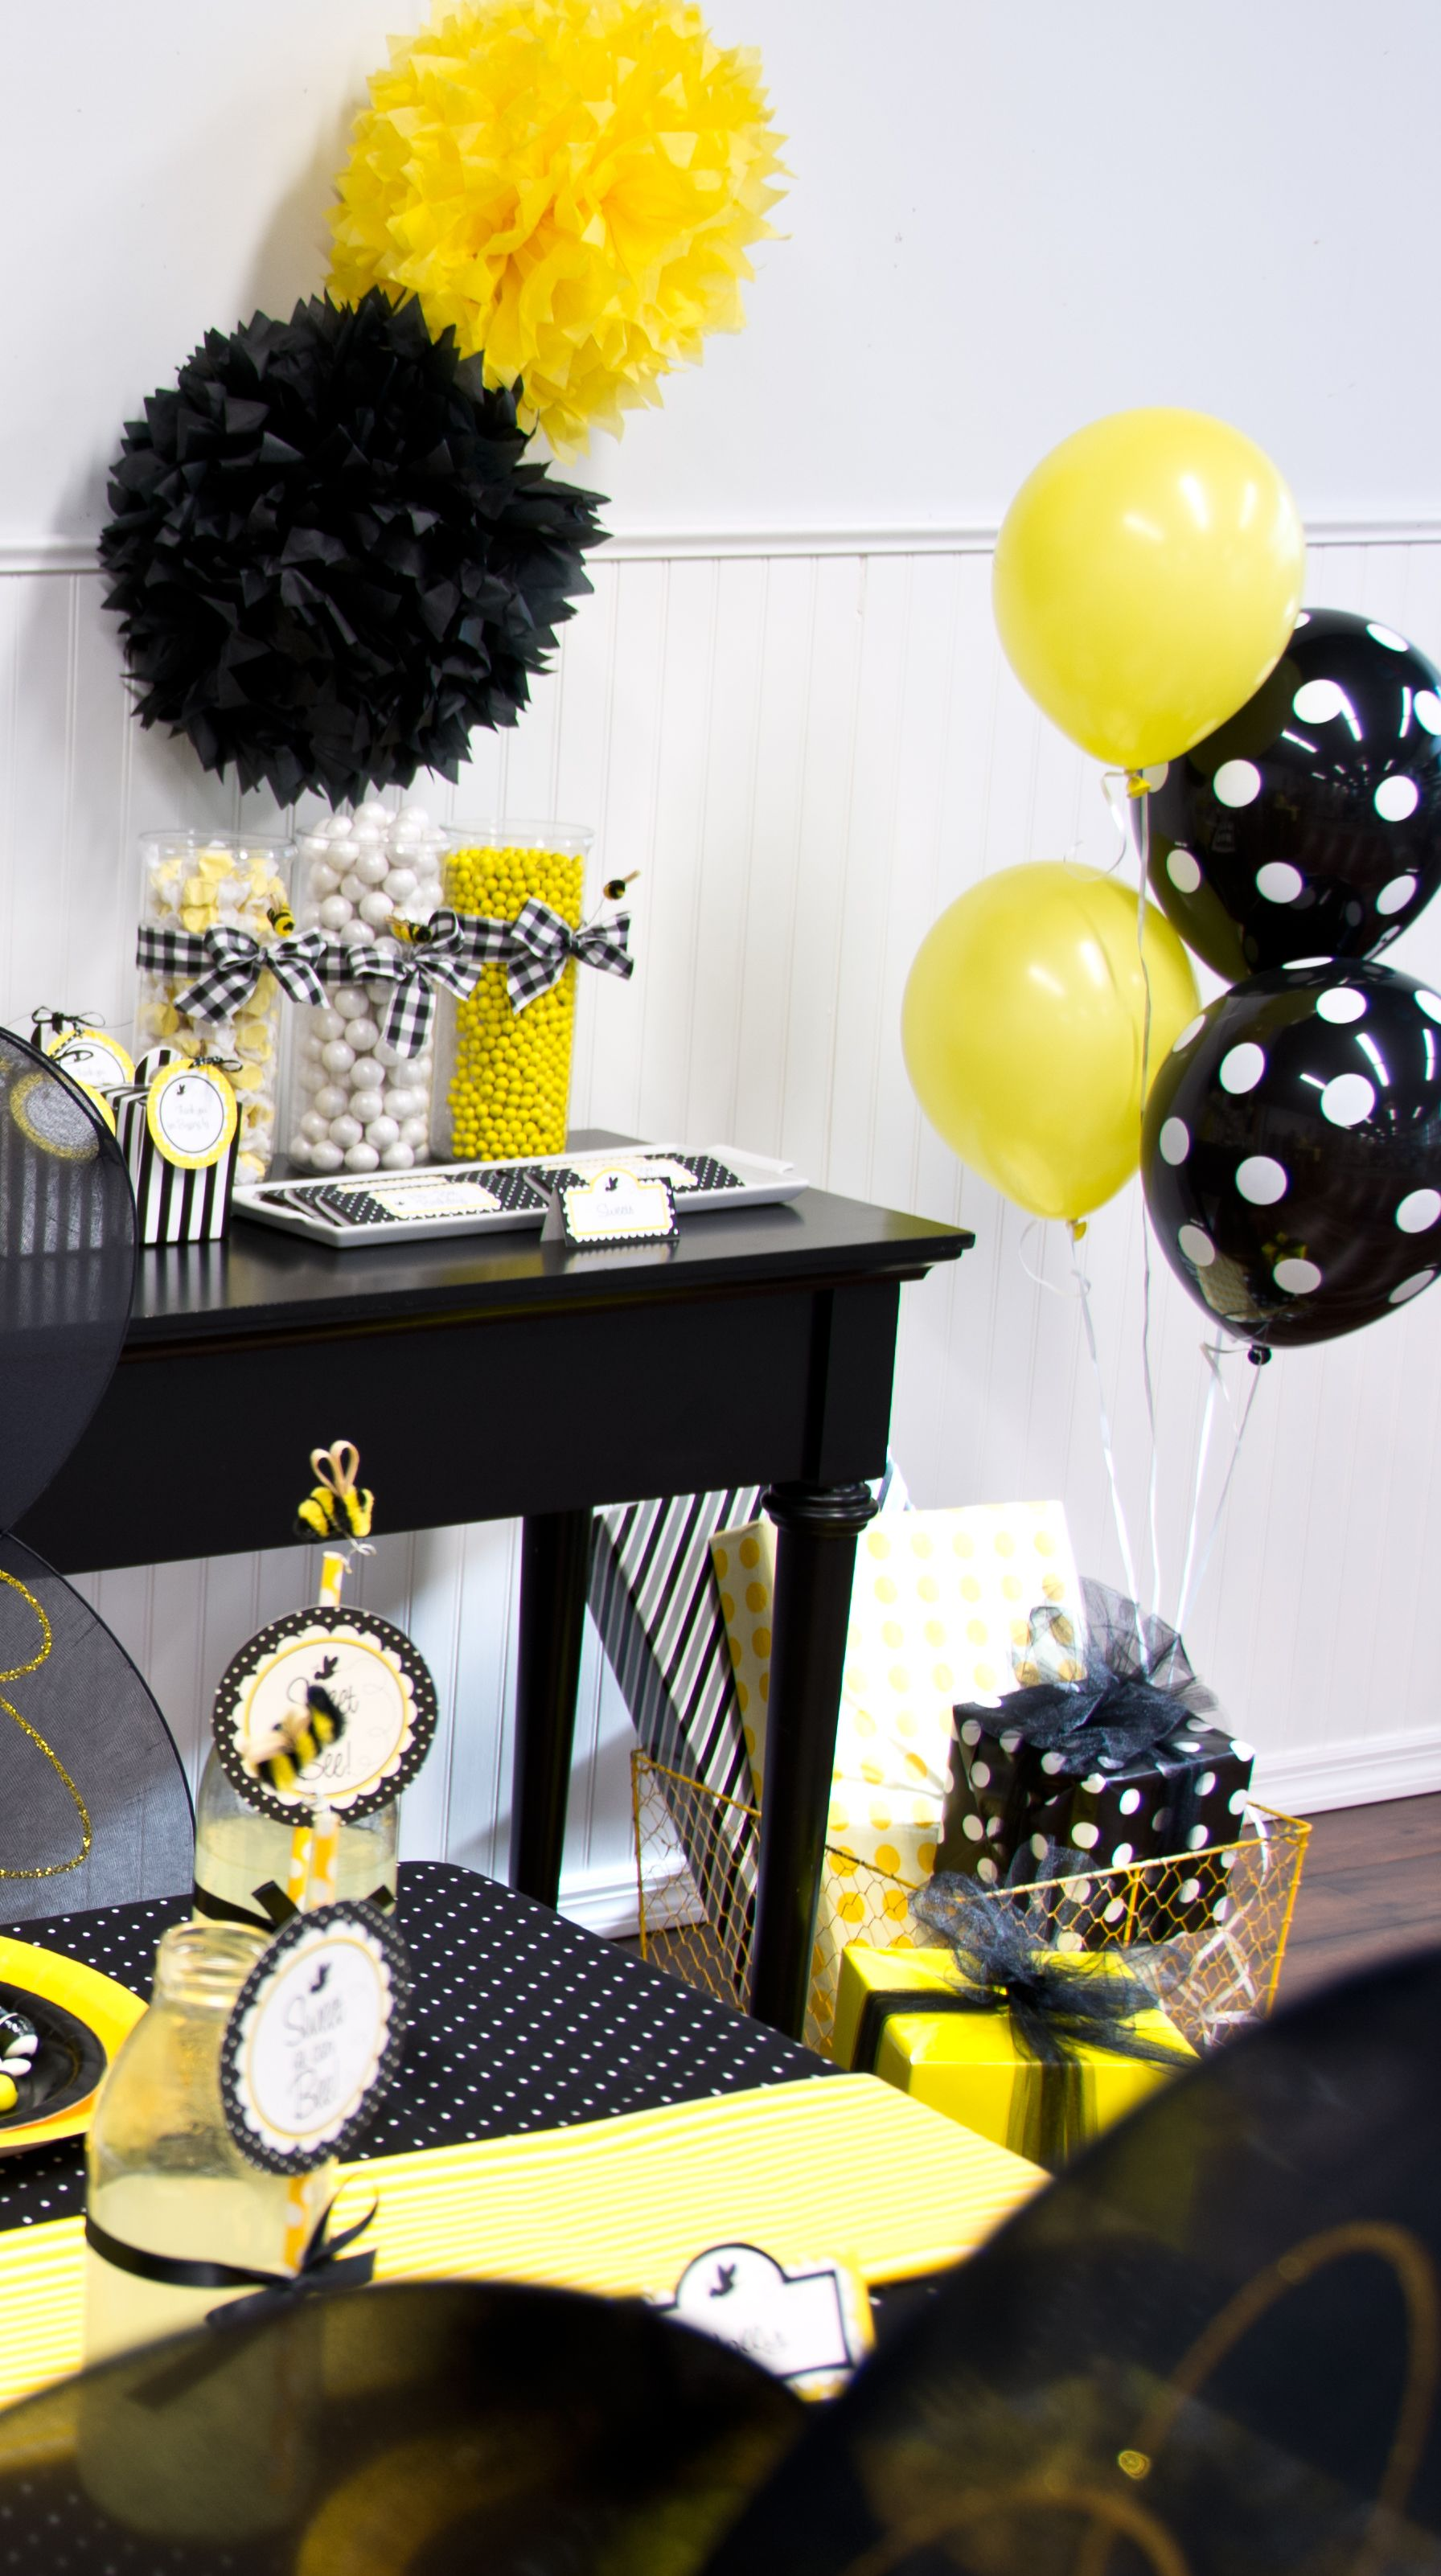 Black And White Polka Dot Balloons Stand Out Against The Yellow